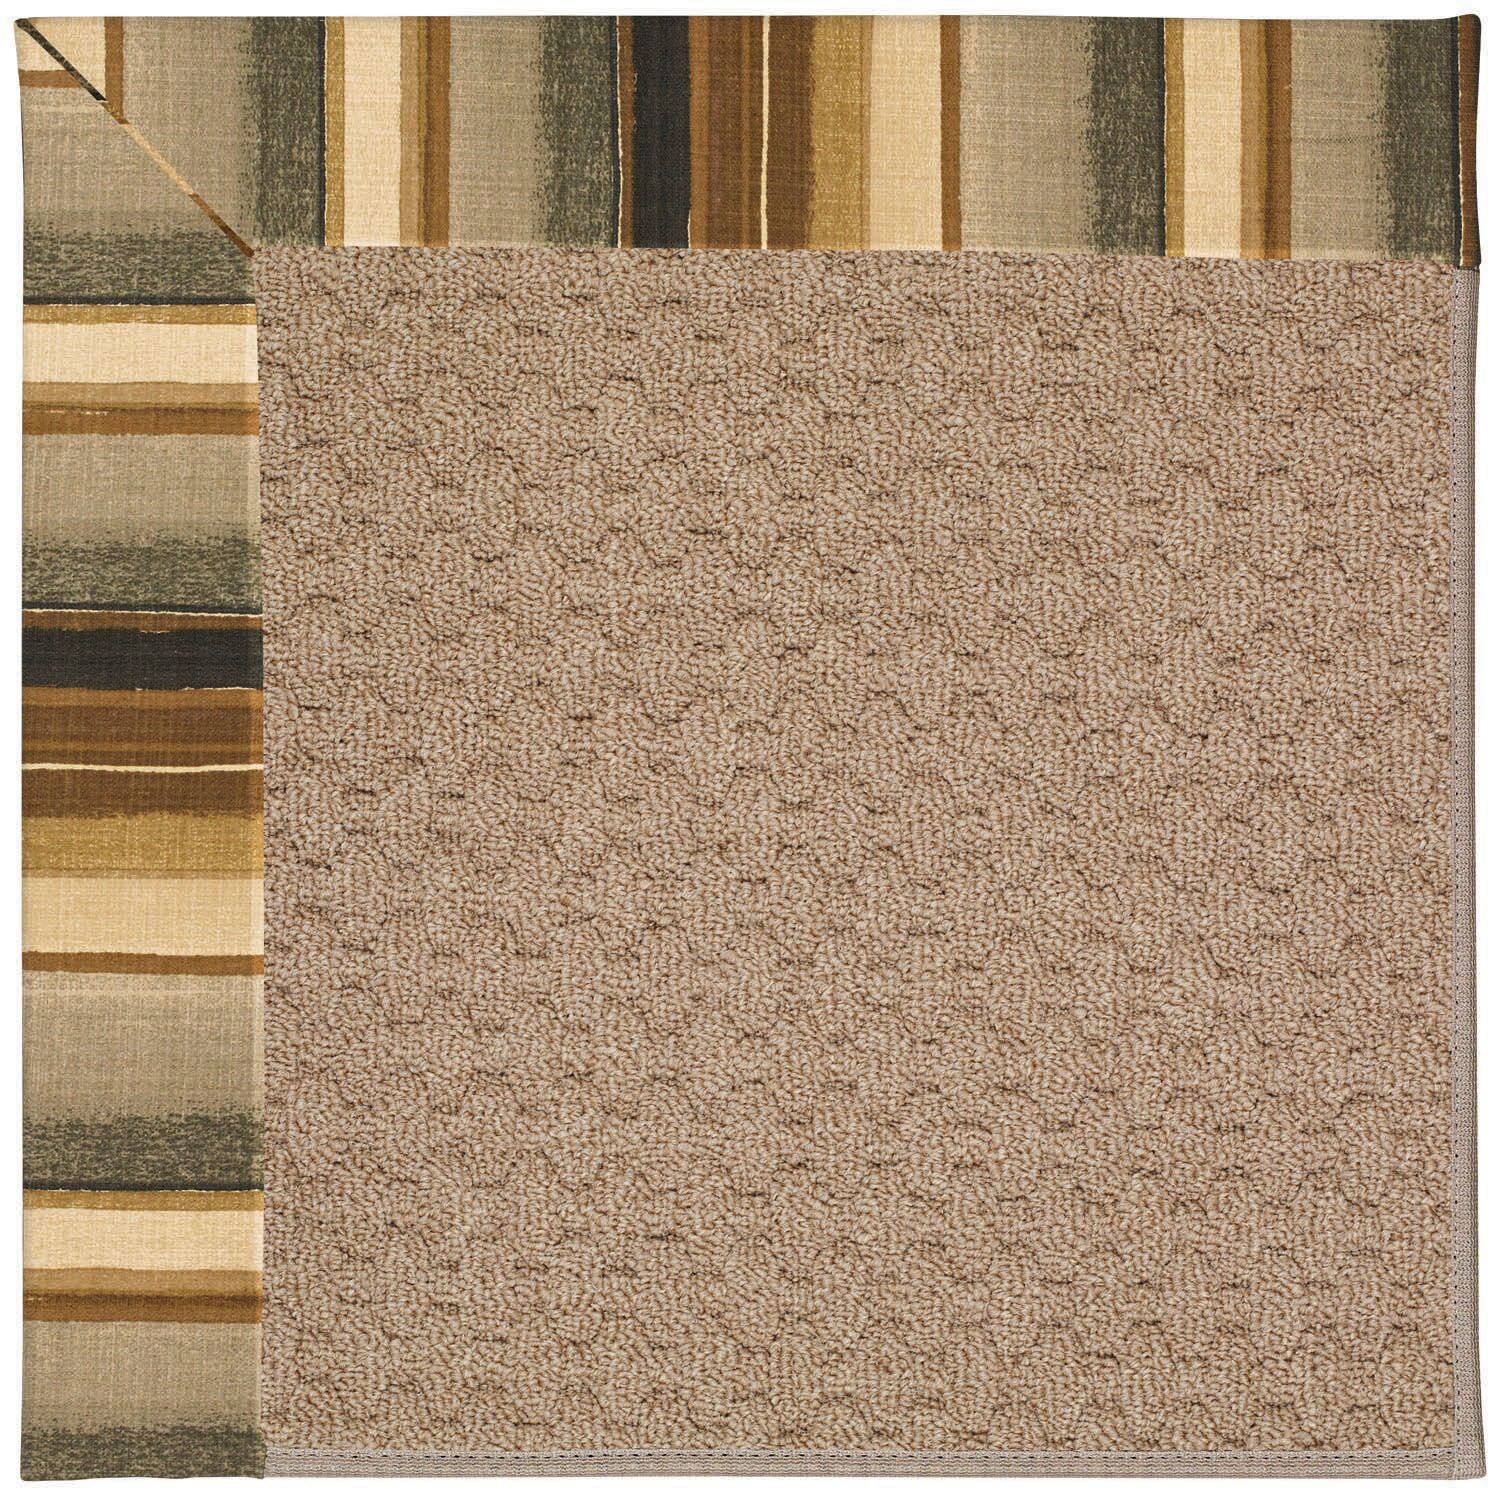 Lisle Machine Tufted Cinders/Brown Indoor/Outdoor Area Rug Rug Size: Round 12'